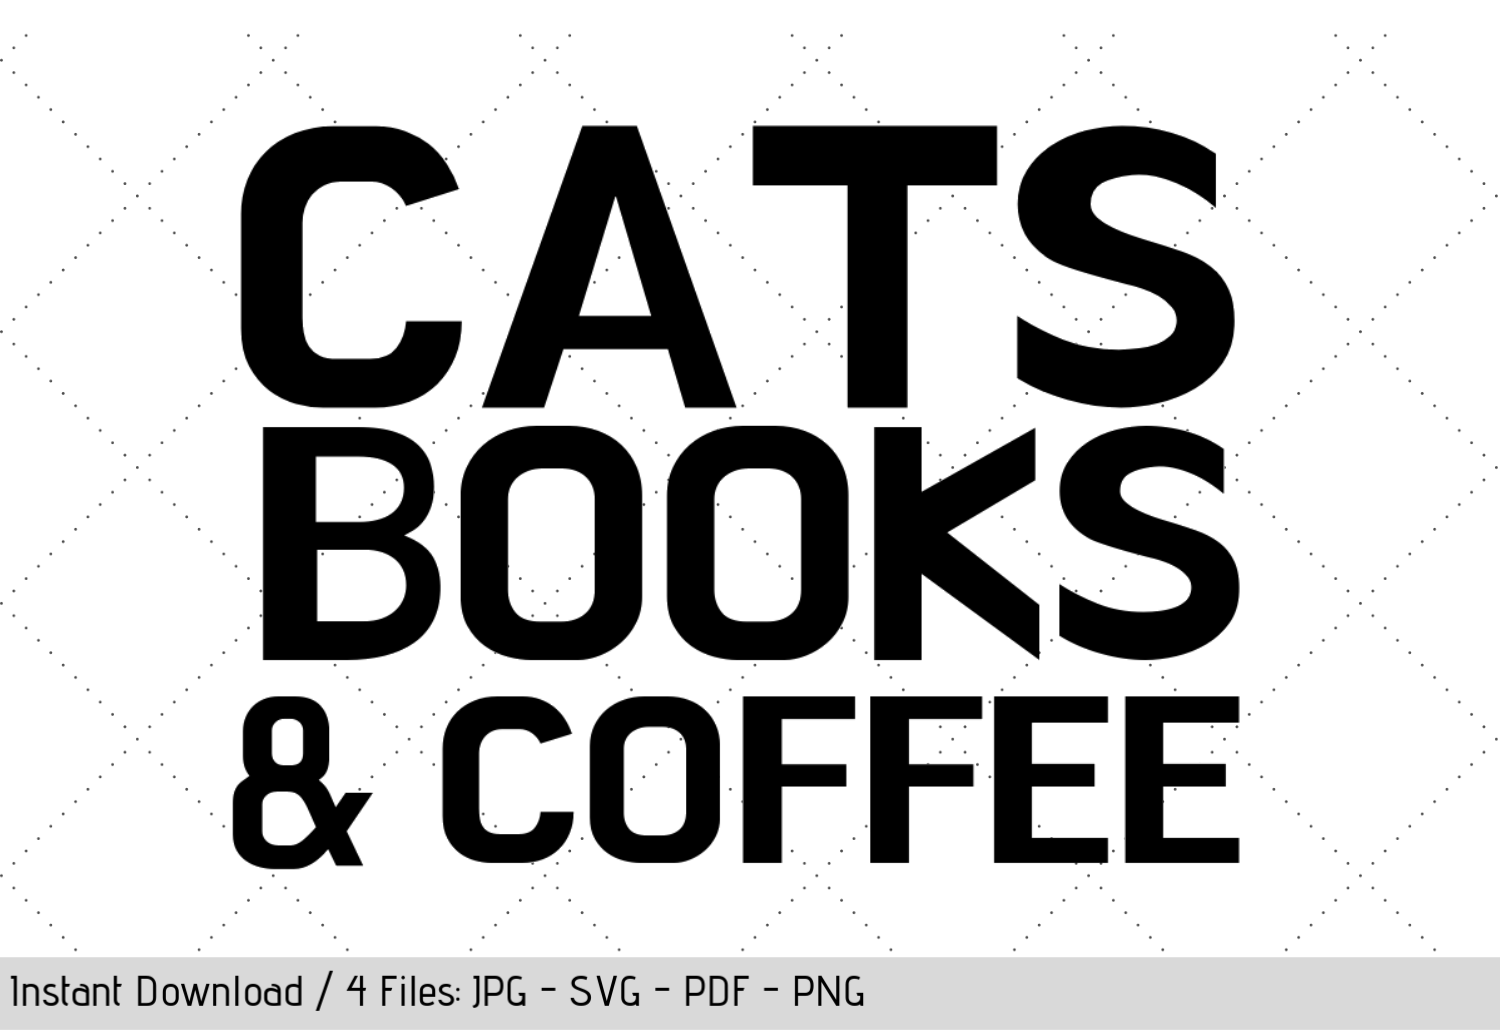 Download Free Cats Books Coffee Svg Cut File Graphic By Werk It Girl for Cricut Explore, Silhouette and other cutting machines.